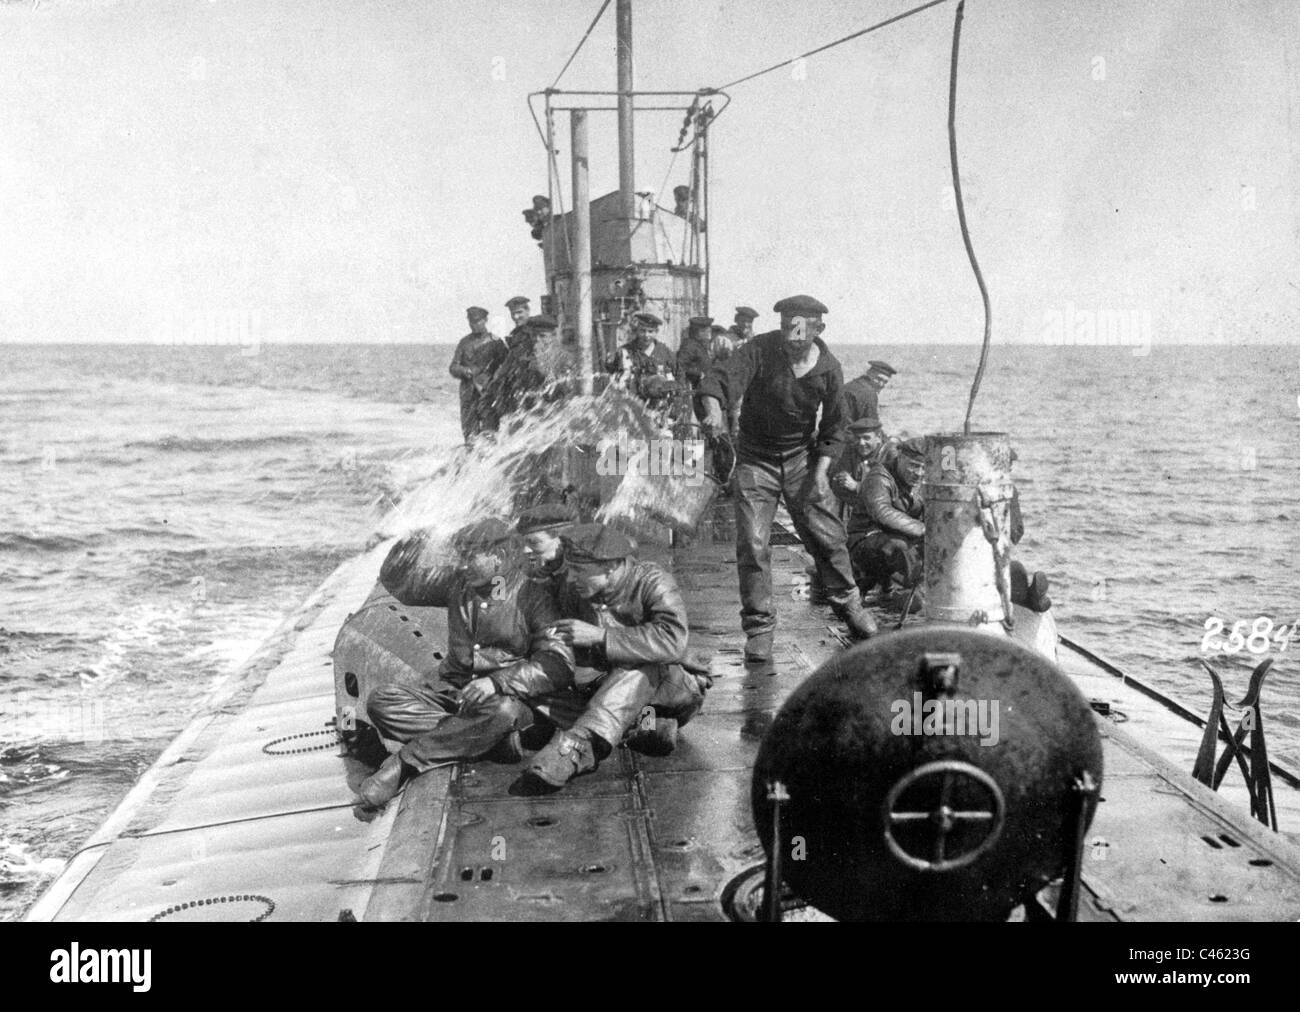 german u boats essay New book 'so close to home' offers first-person account of the 1942 sinking of the heredia, just 44 miles from the mouth of the mississippi, by a nazi u-boat.